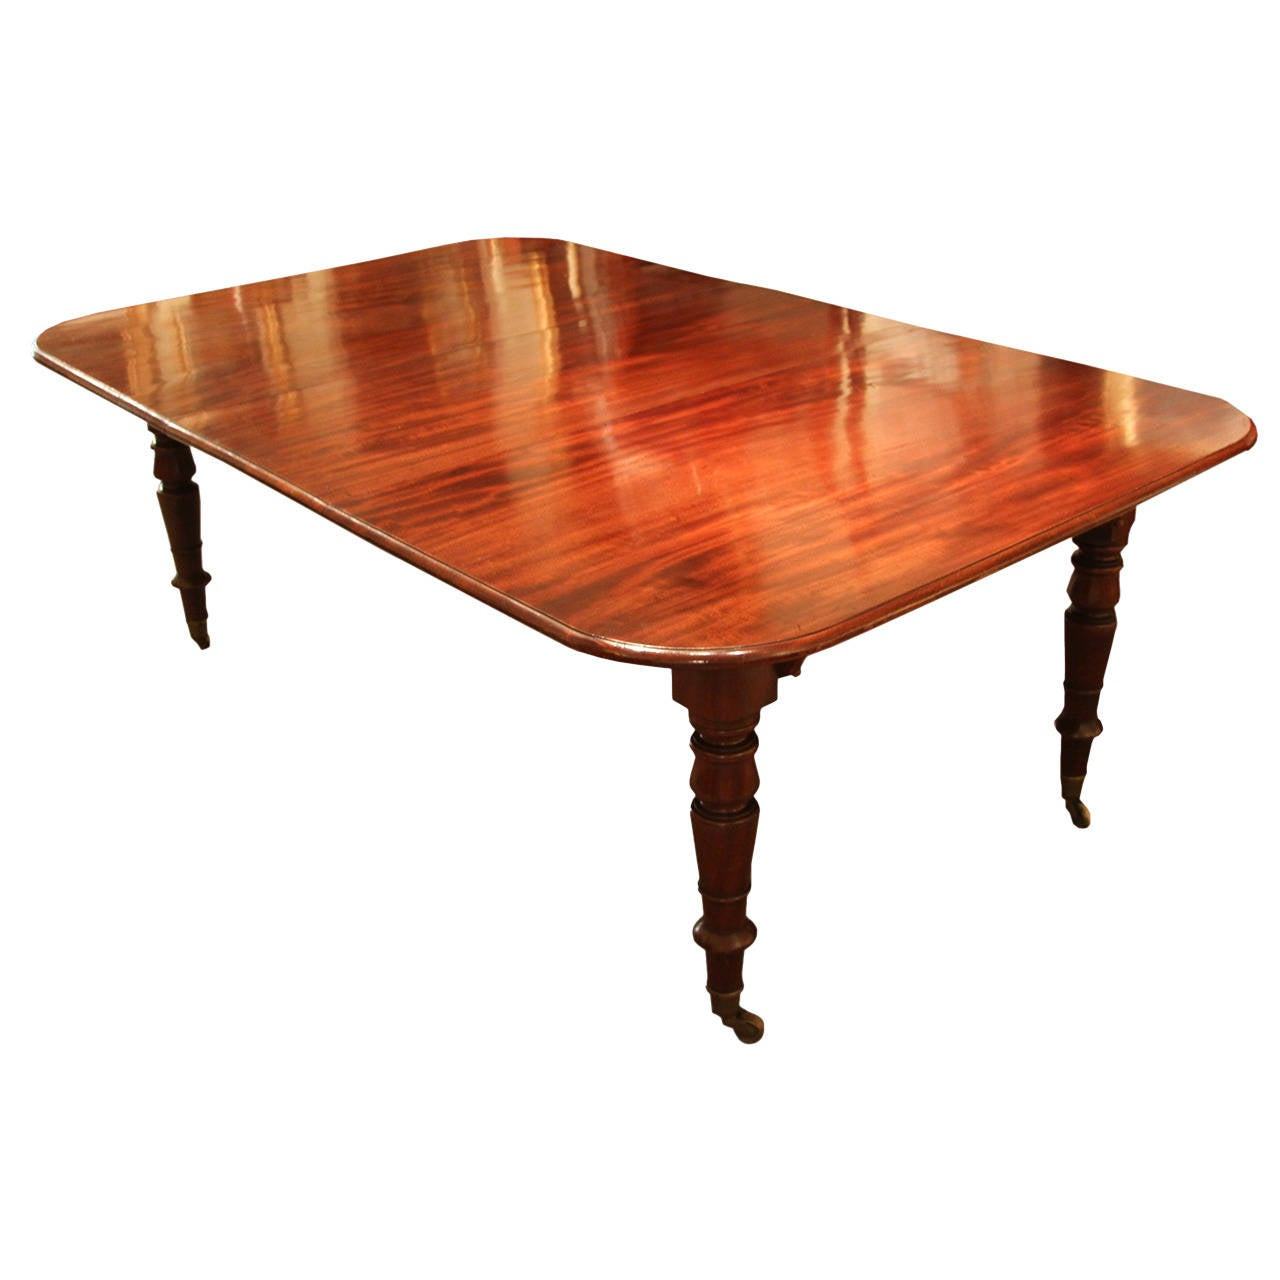 Good late regency dining table at 1stdibs for Regency dining room